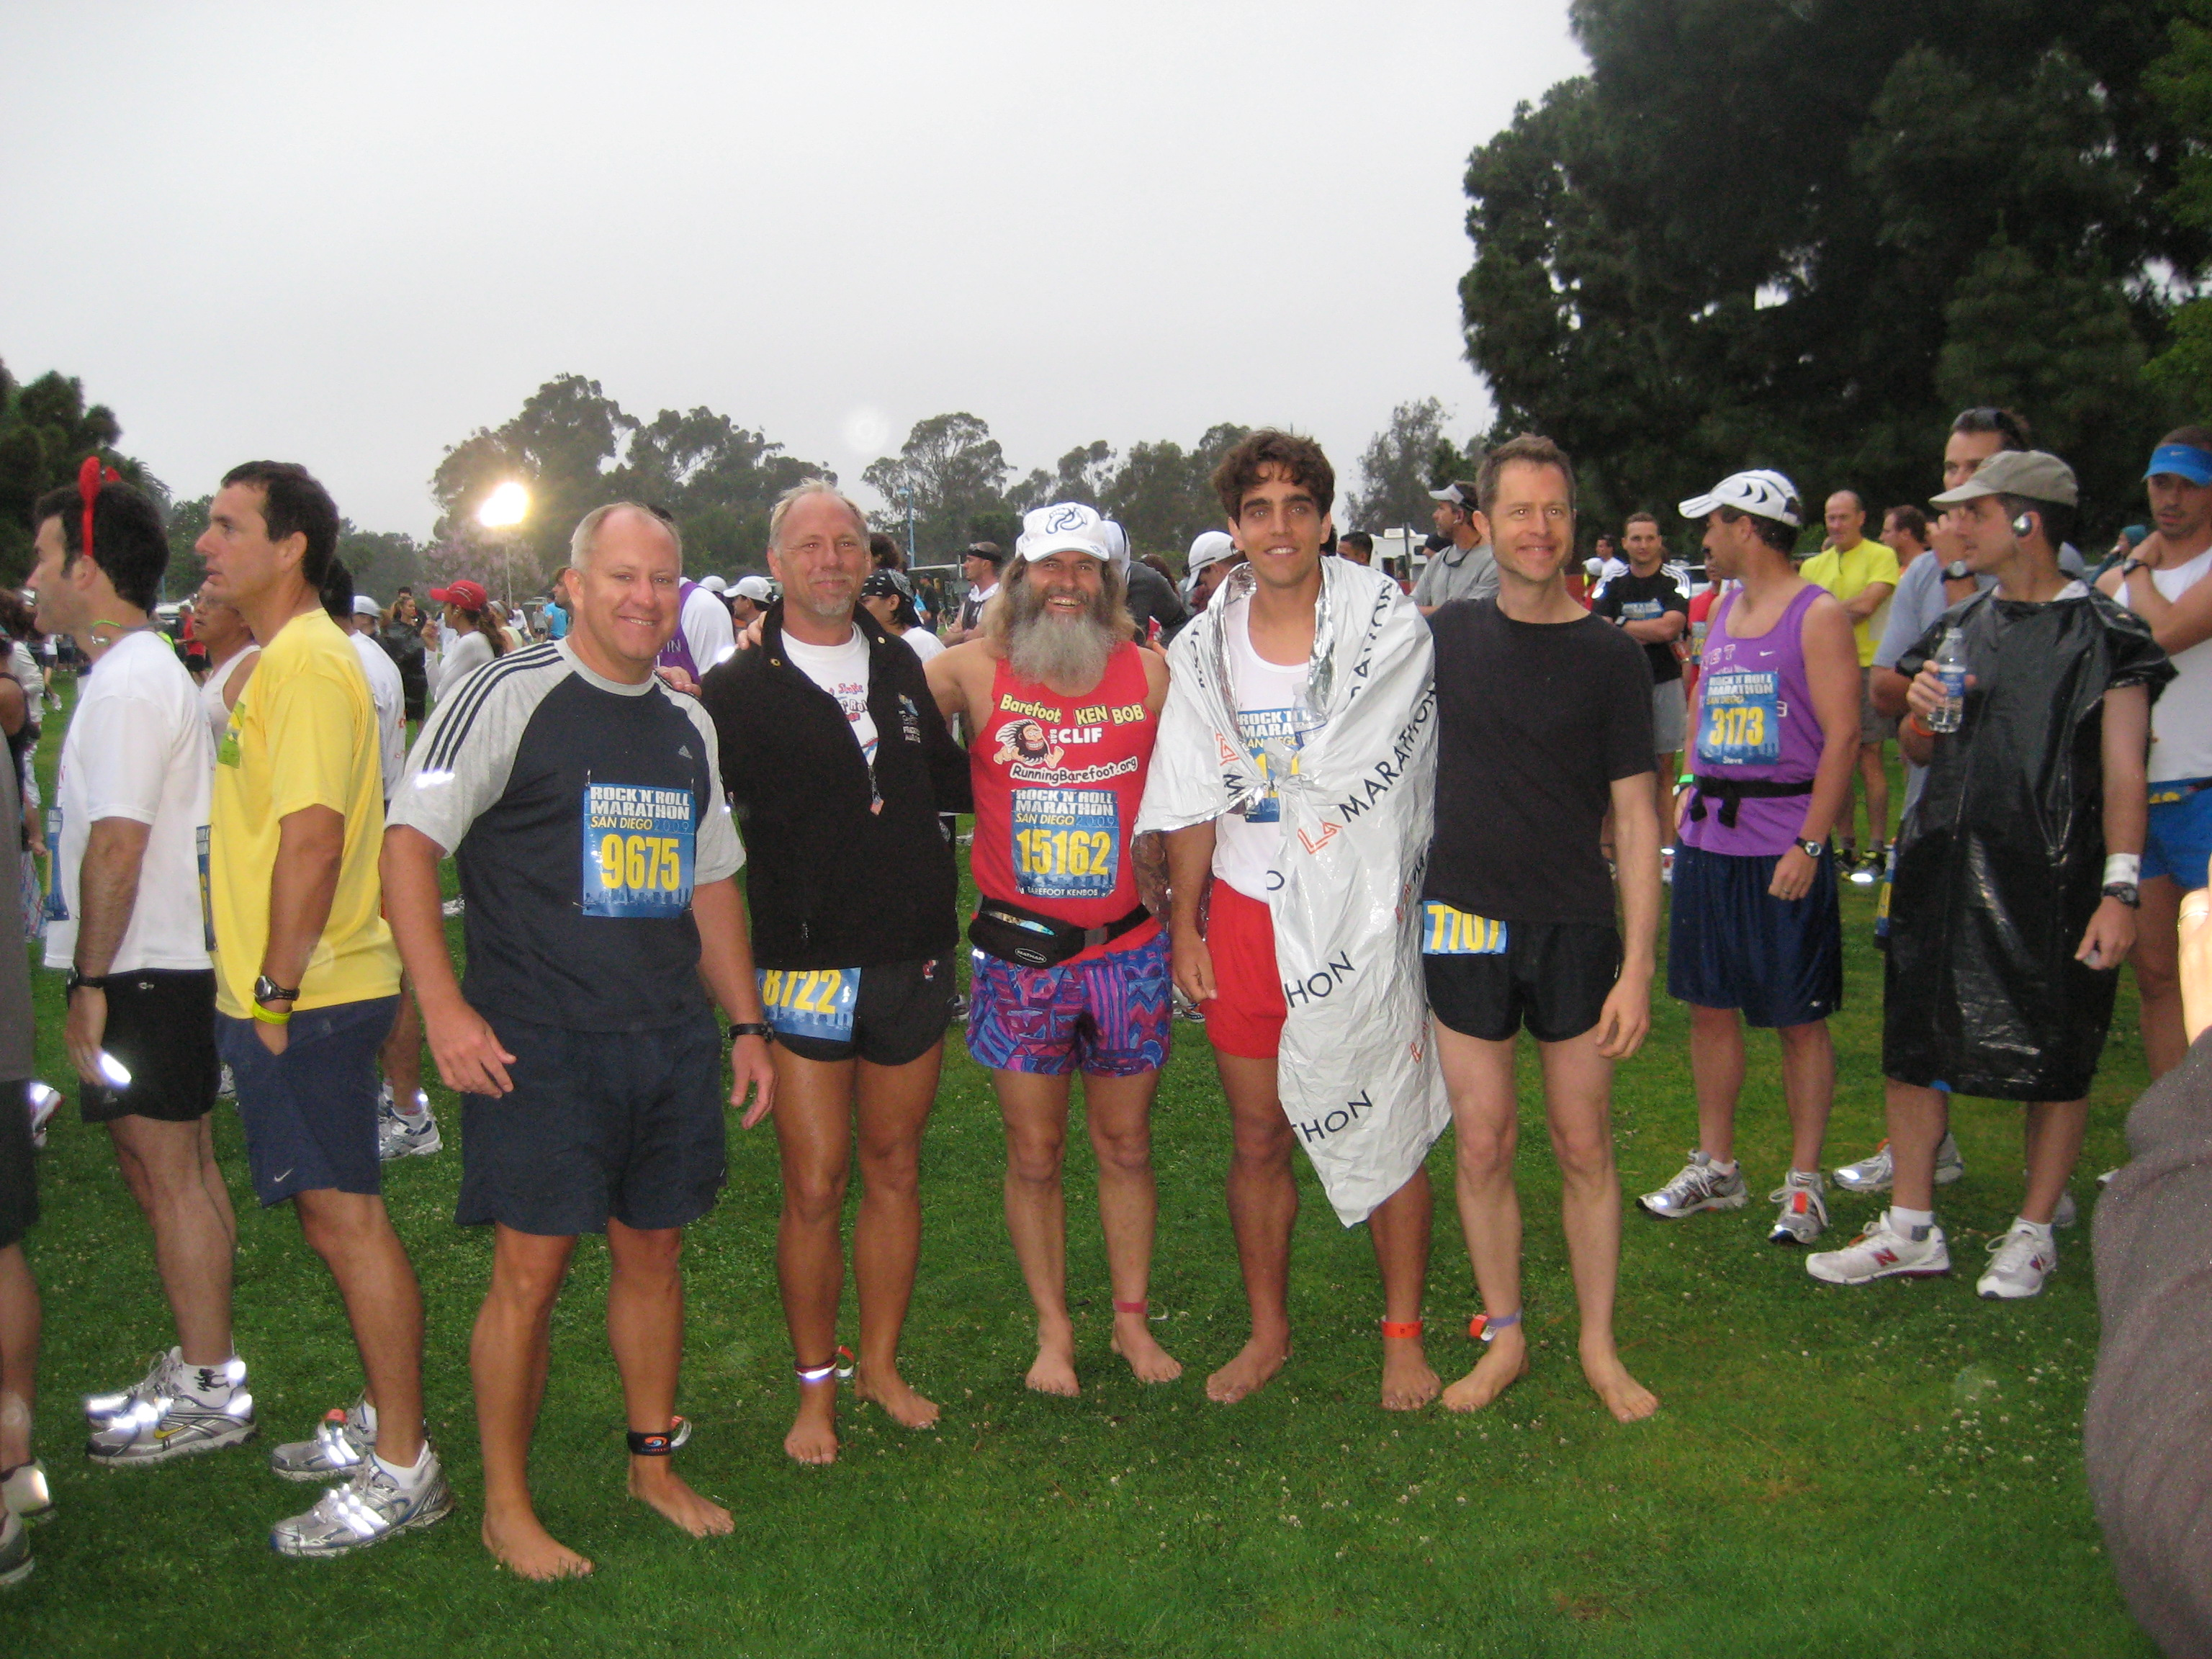 Barefoot Runners - Jim, Todd, Ken Bob, Julian, Chris